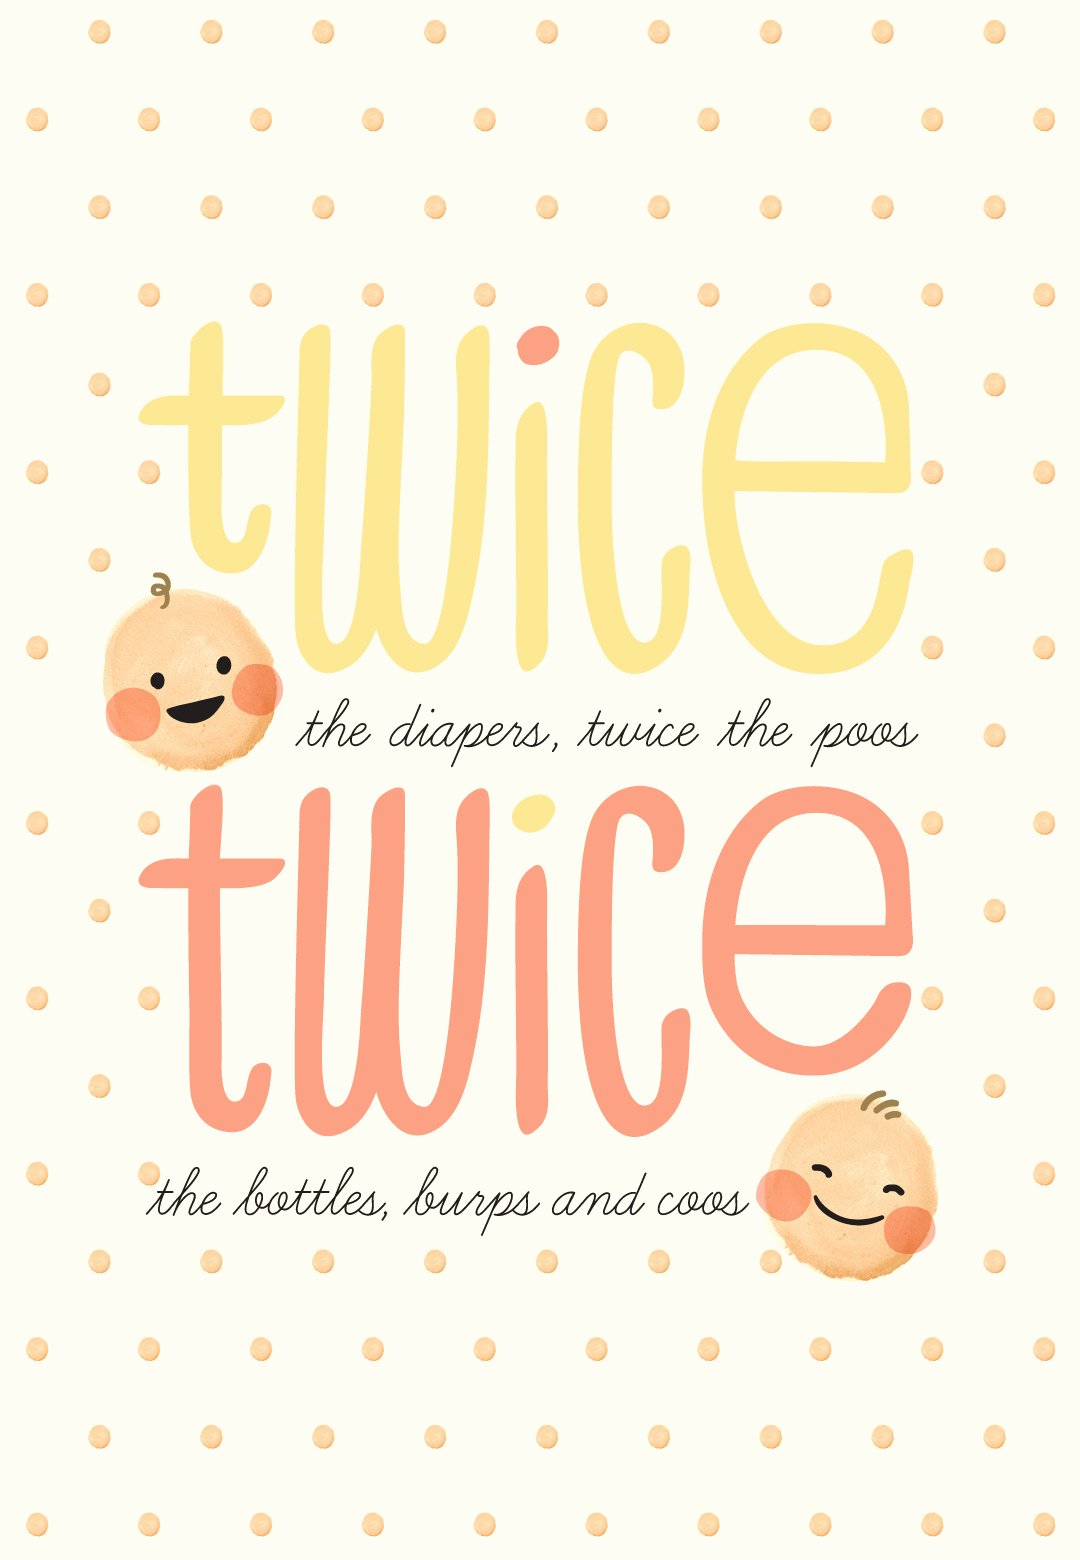 Baby Shower Card to Print Awesome Twice Twins Baby Shower & New Baby Card